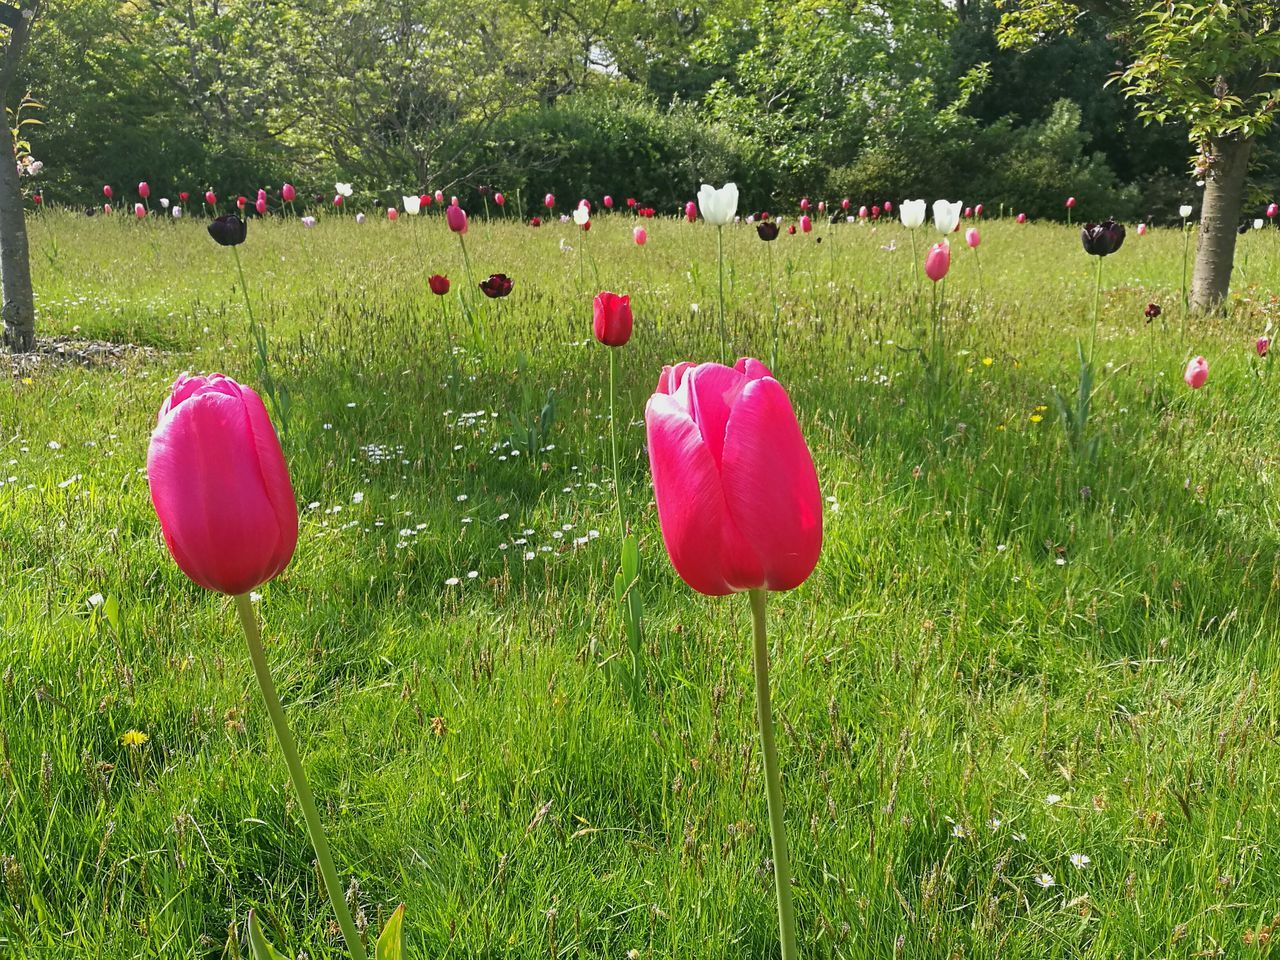 Tulips Pink Tulip Tulip Flowers Flowers Tulip Pink Tulips Tulips In The Wild Field Smartphonephotography HuaweiP9 Springtime Spring Flowers Spring Outdoors Nature Beauty In Nature Grass Pink And Green Flower Head Freshness Flower Garden Kew Gardens, London Bloom Spring Freshness